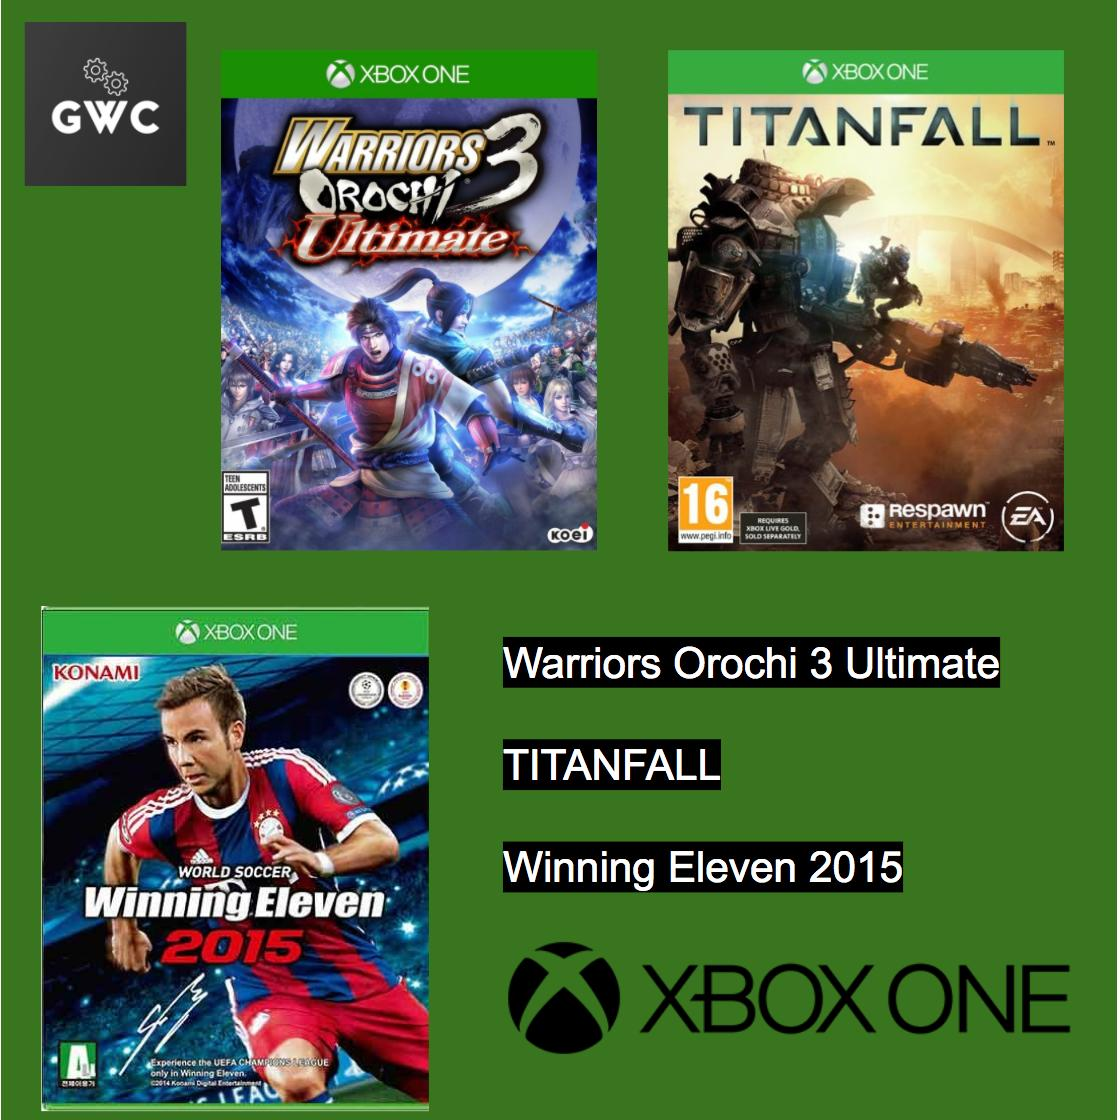 Sales Price Xbox One Games X 3 Warriors Orochi 3 Ultimate Titanfall Winning Eleven 2015